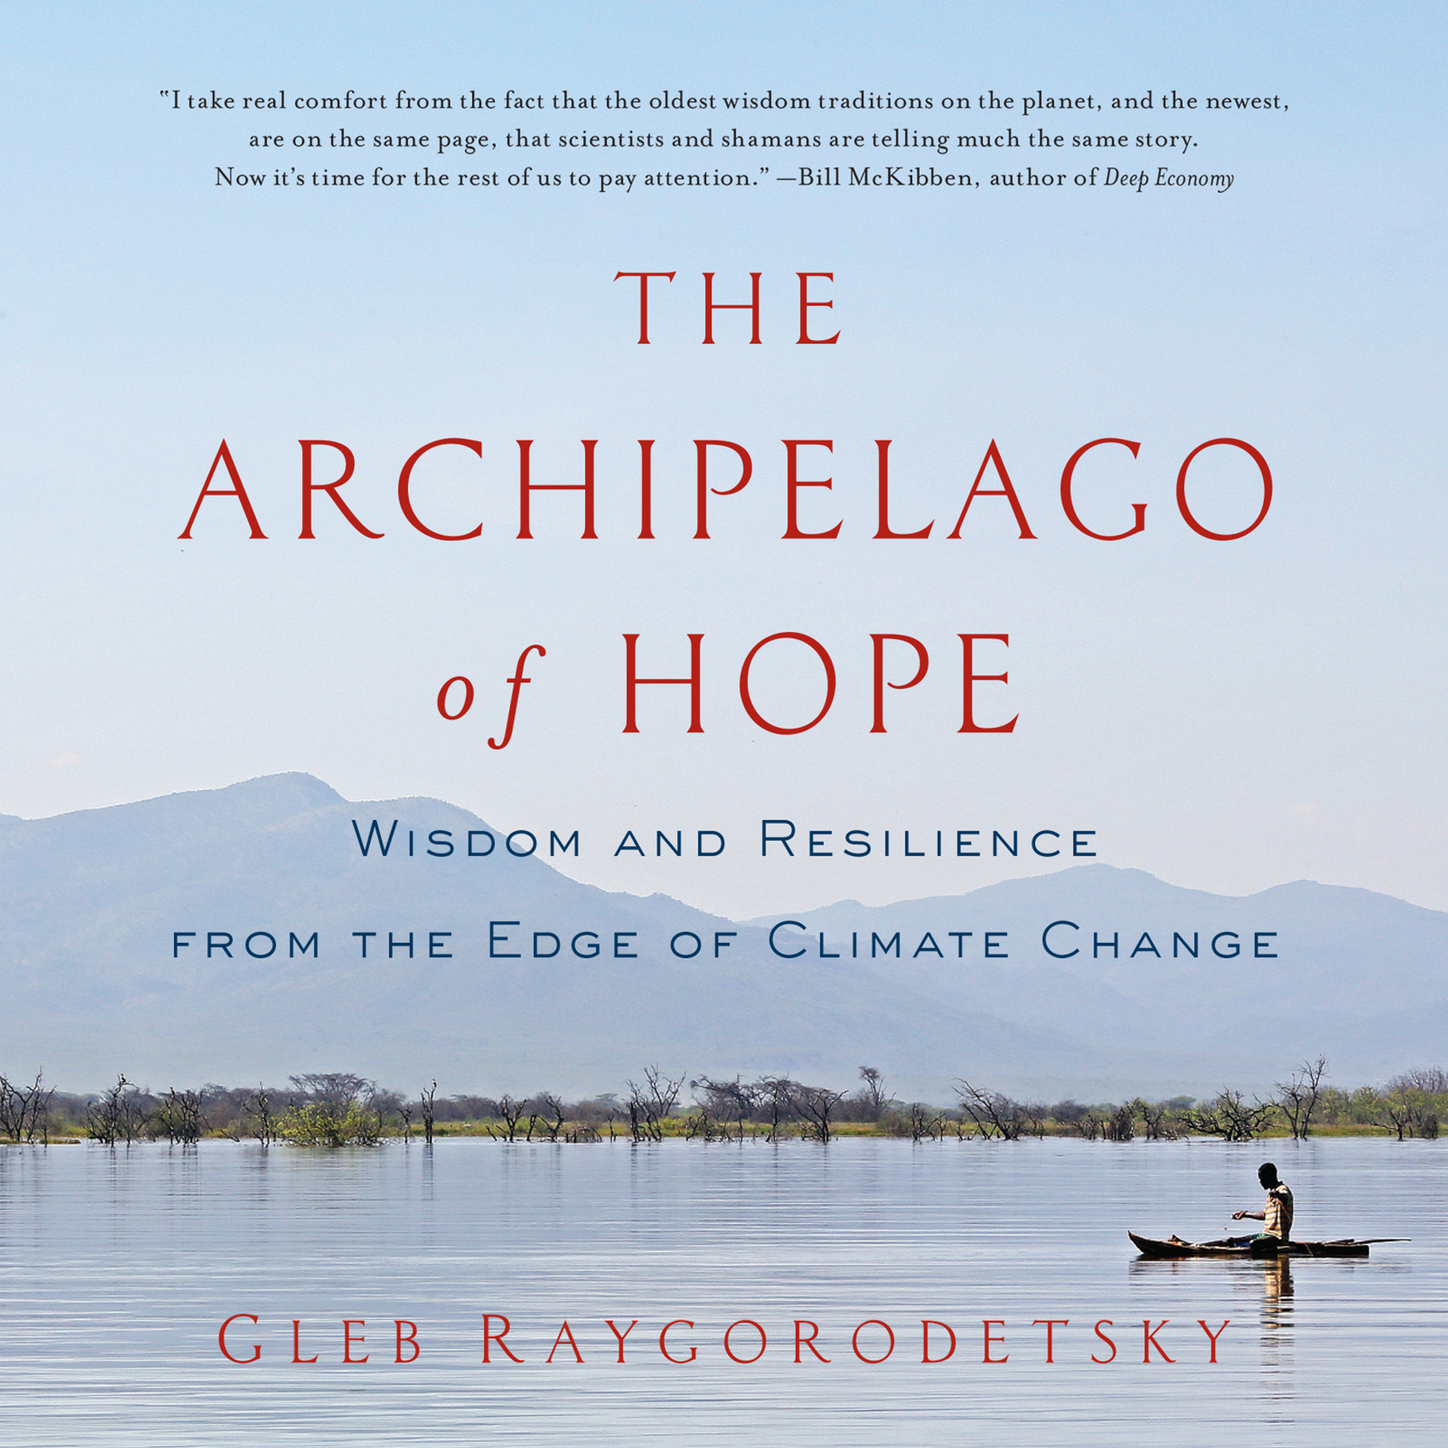 Gleb Raygorodetsky The Archipelago of Hope - Wisdom and Resilience from the Edge of Climate Change (Unabridged) the wisdom of hair